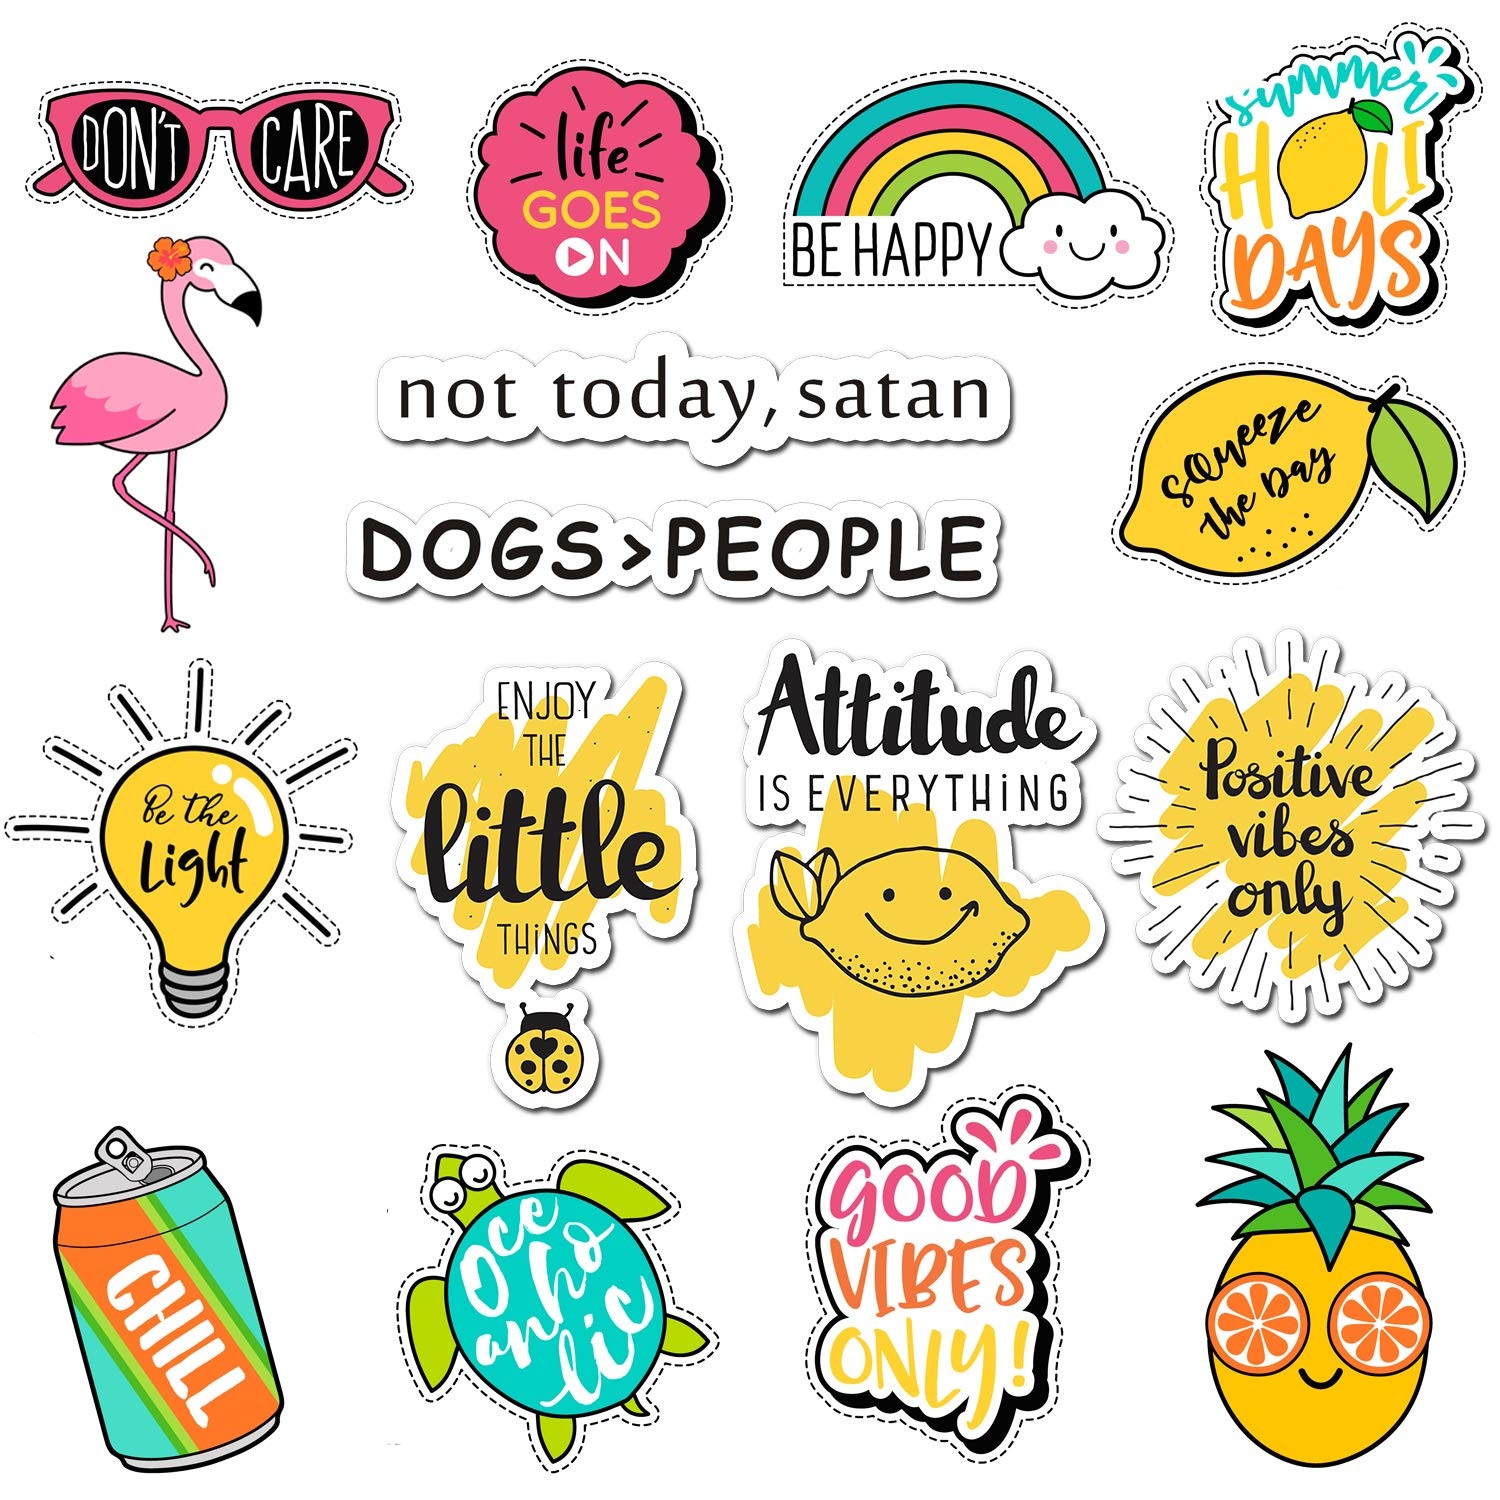 Cute Aesthetic Stickers 57pcs Positive Lovely Trendy Sticker For Laptop Hydro Flasks Water Bottles Mac Computer Phone Pad Guitar Yellow Pink